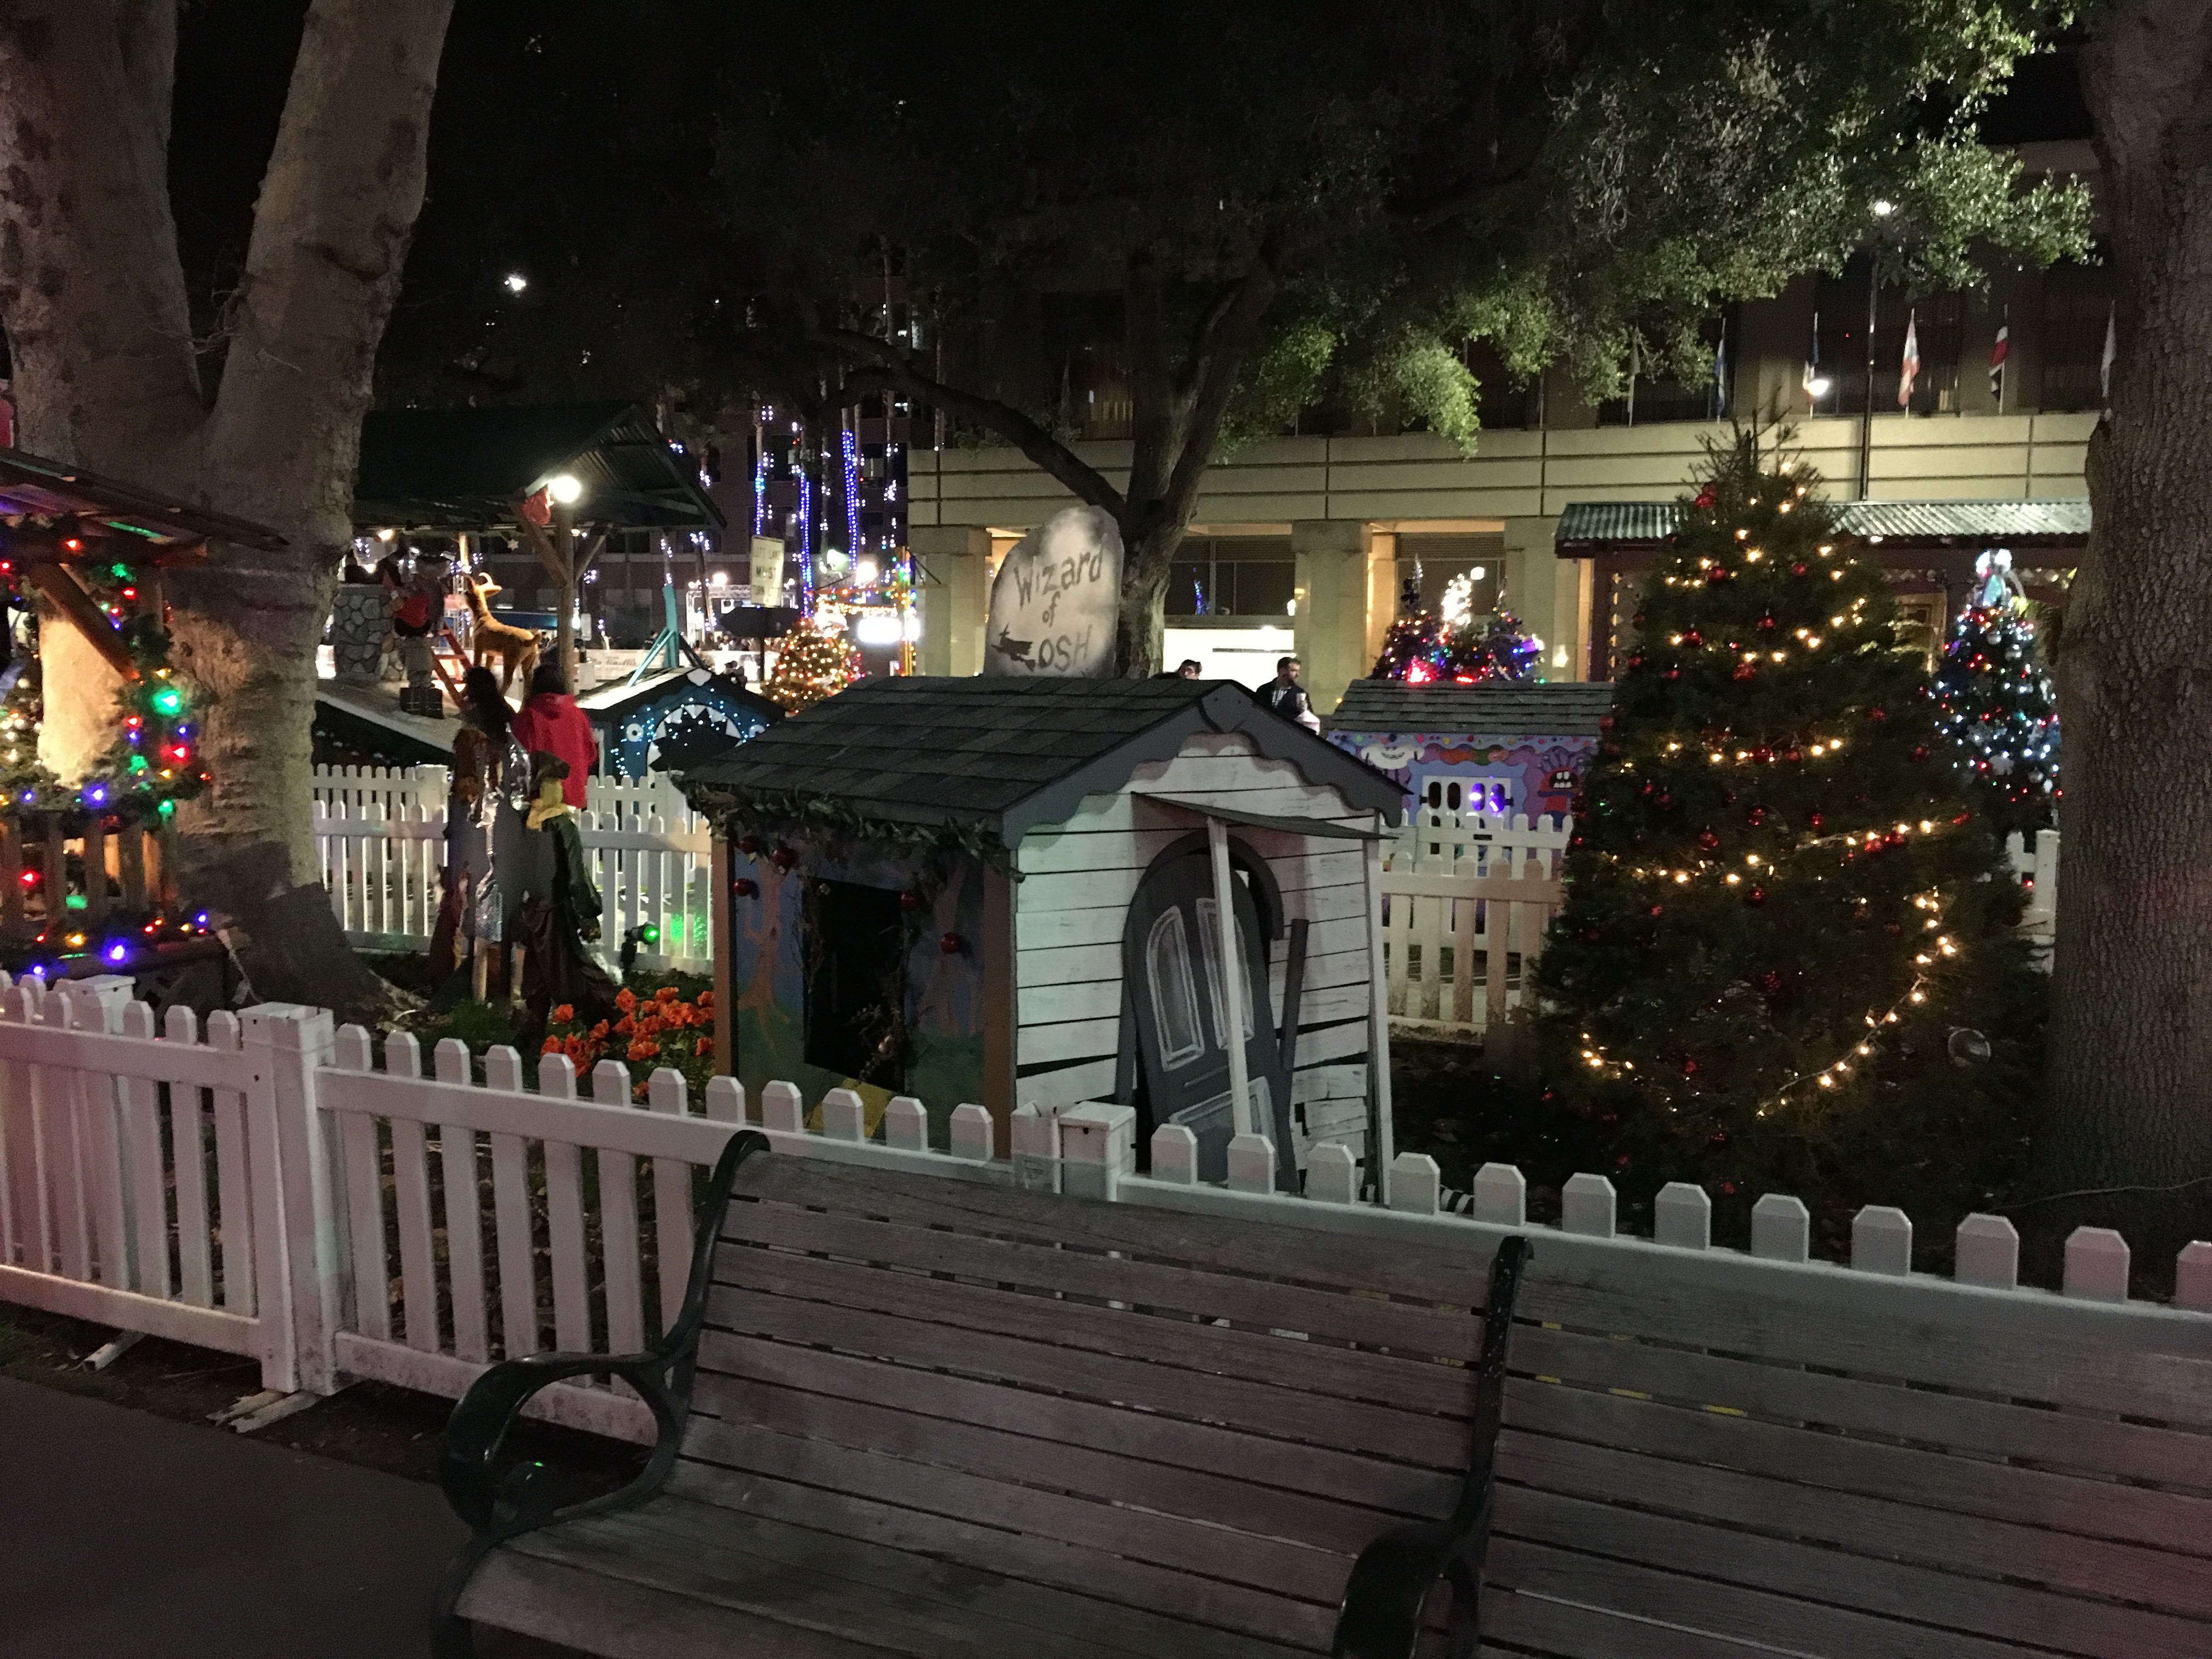 filechristmas in the park 14 2016 12 30jpg - When Does Christmas In The Park Open